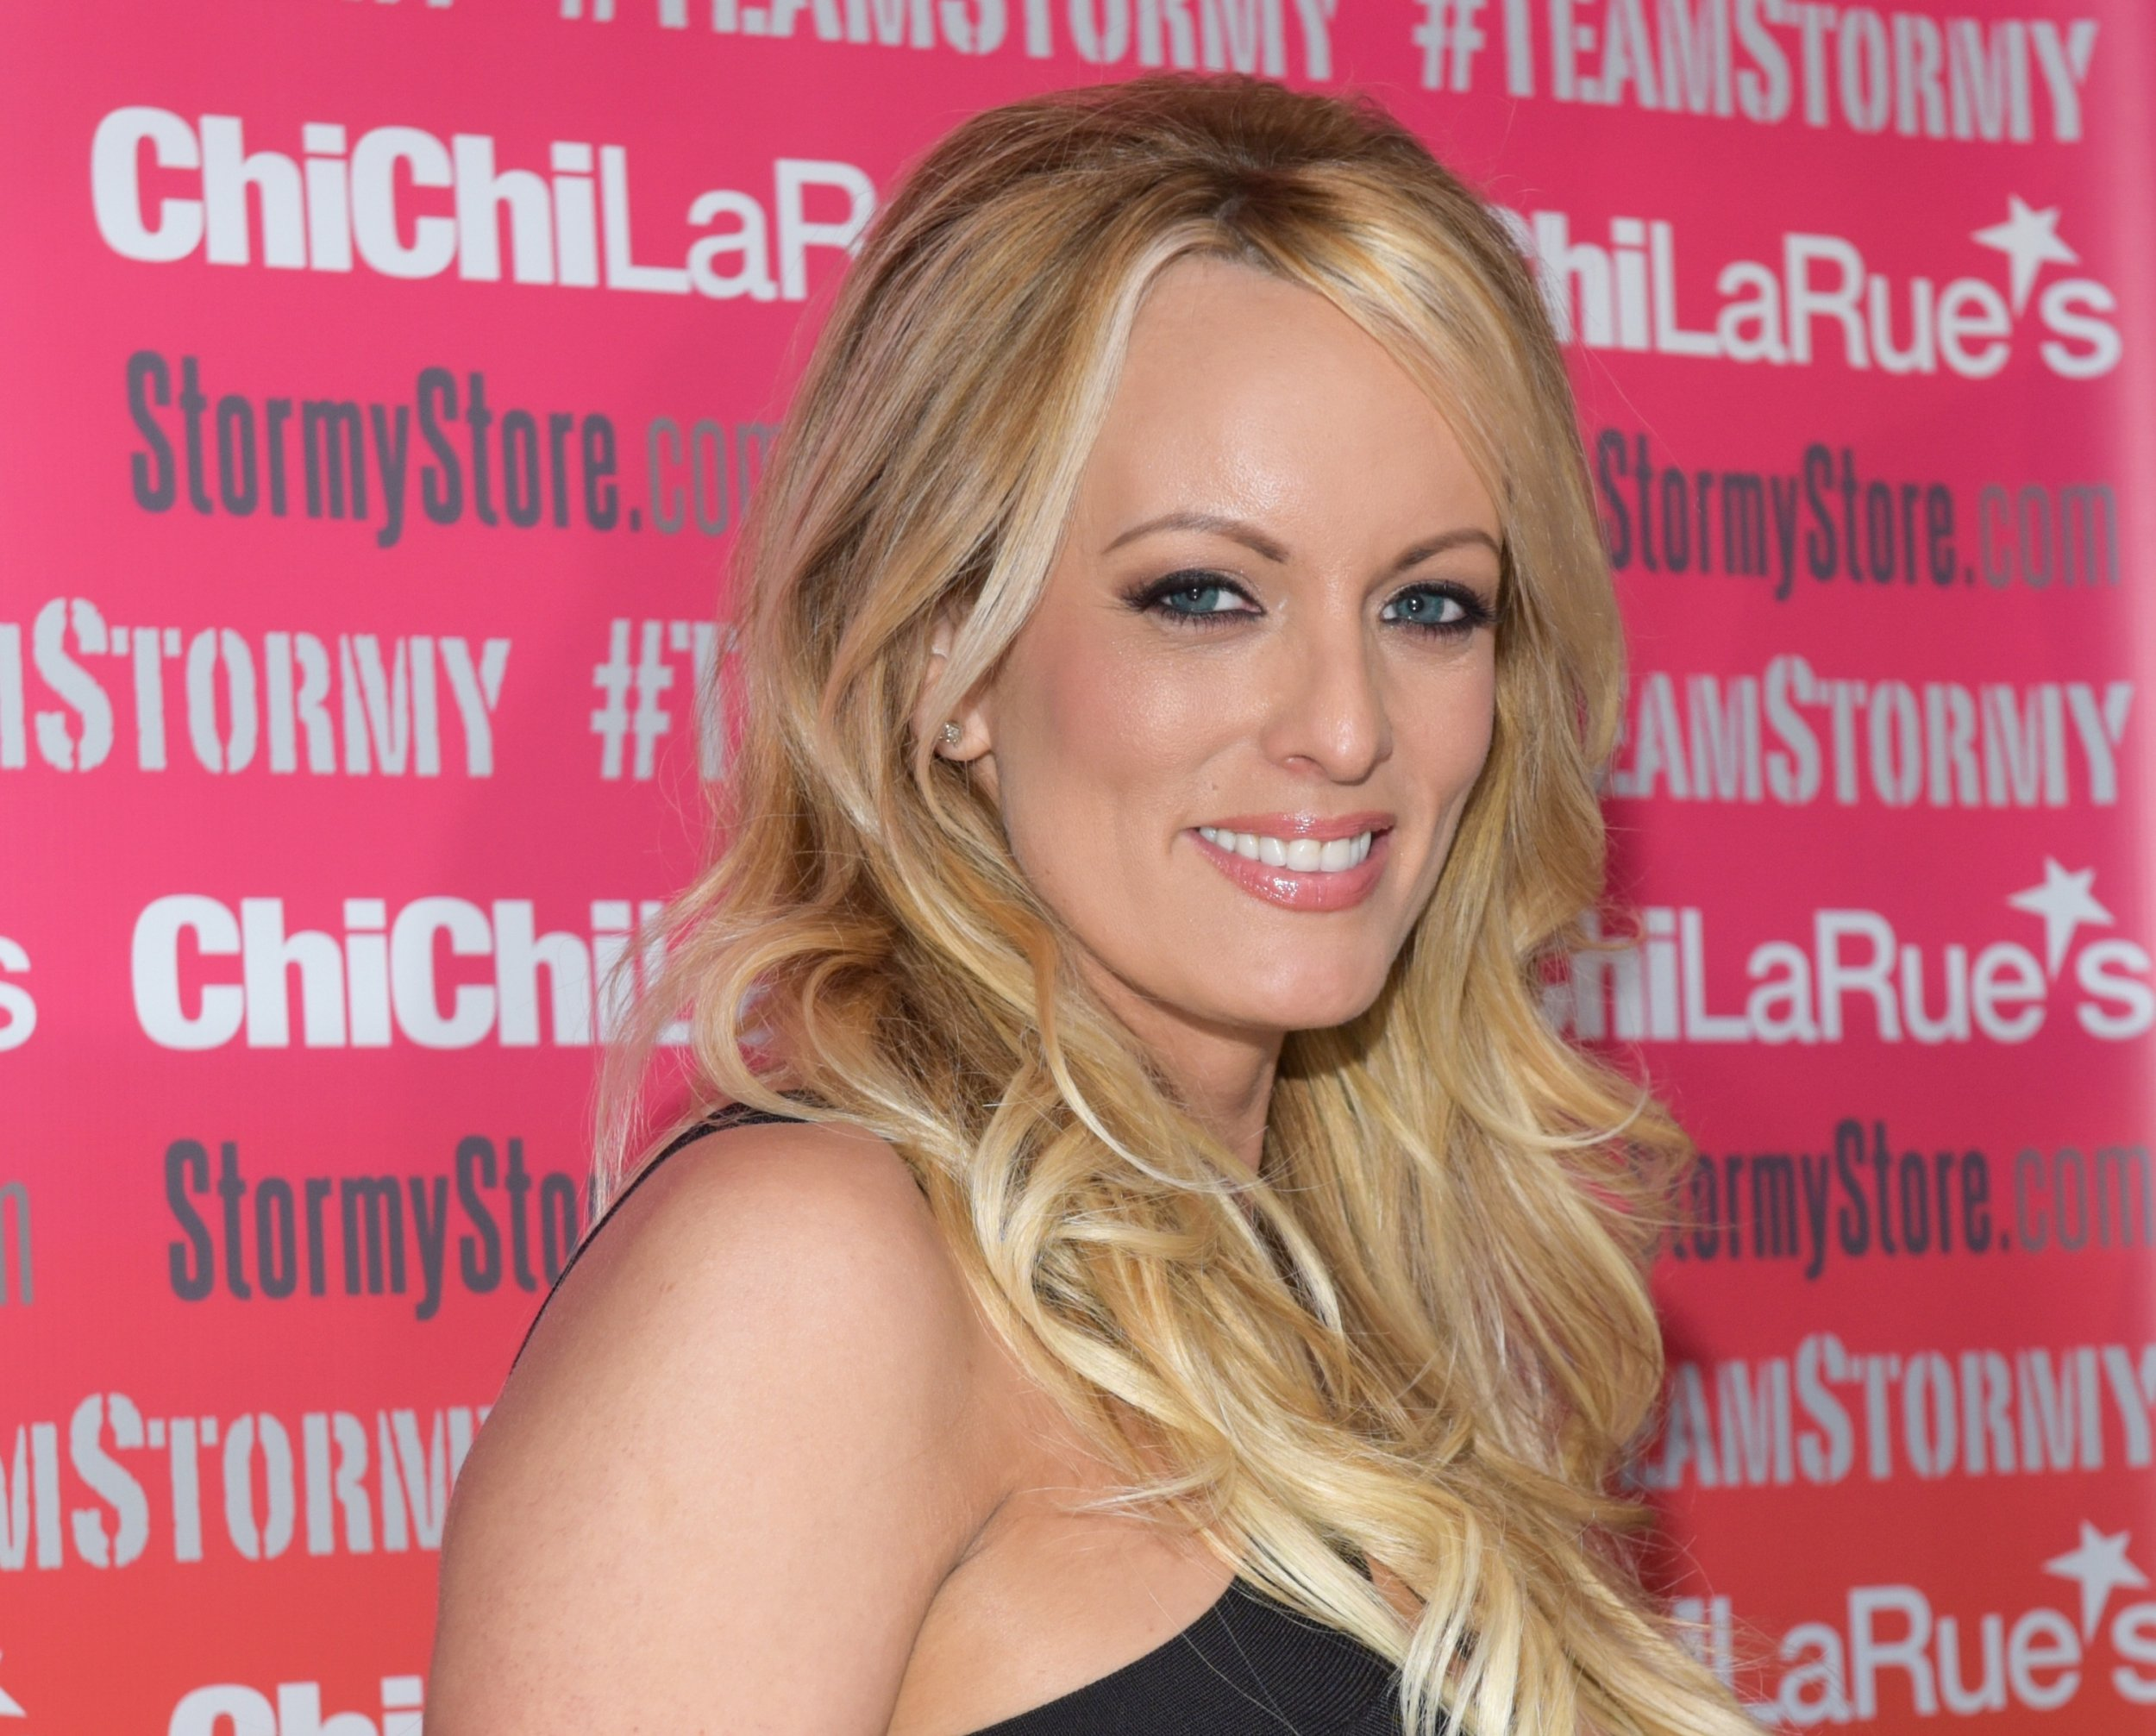 Stormy Daniels for president